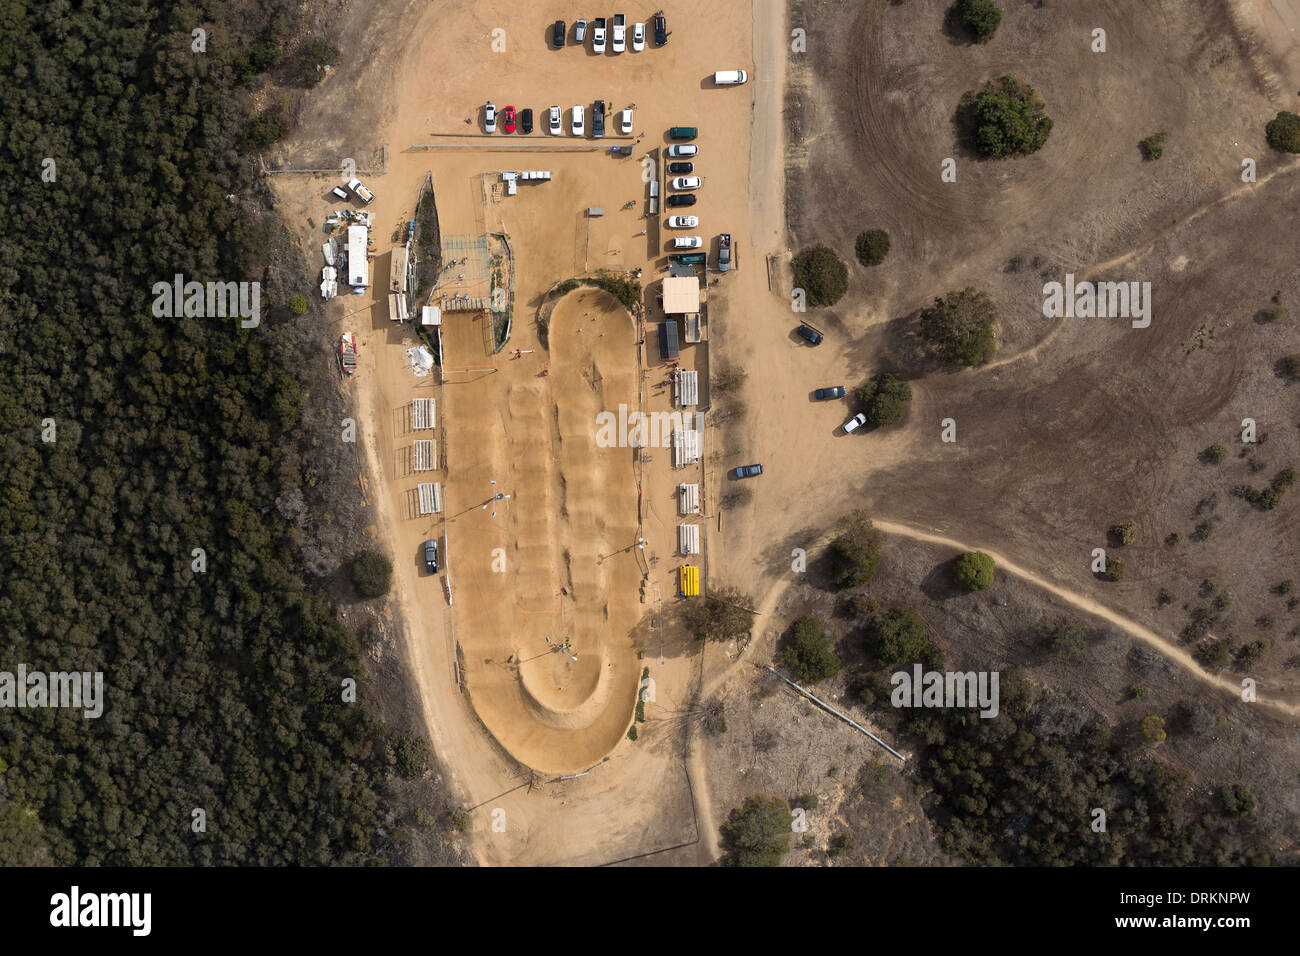 Aerial view of a dirt bike track. - Stock Image